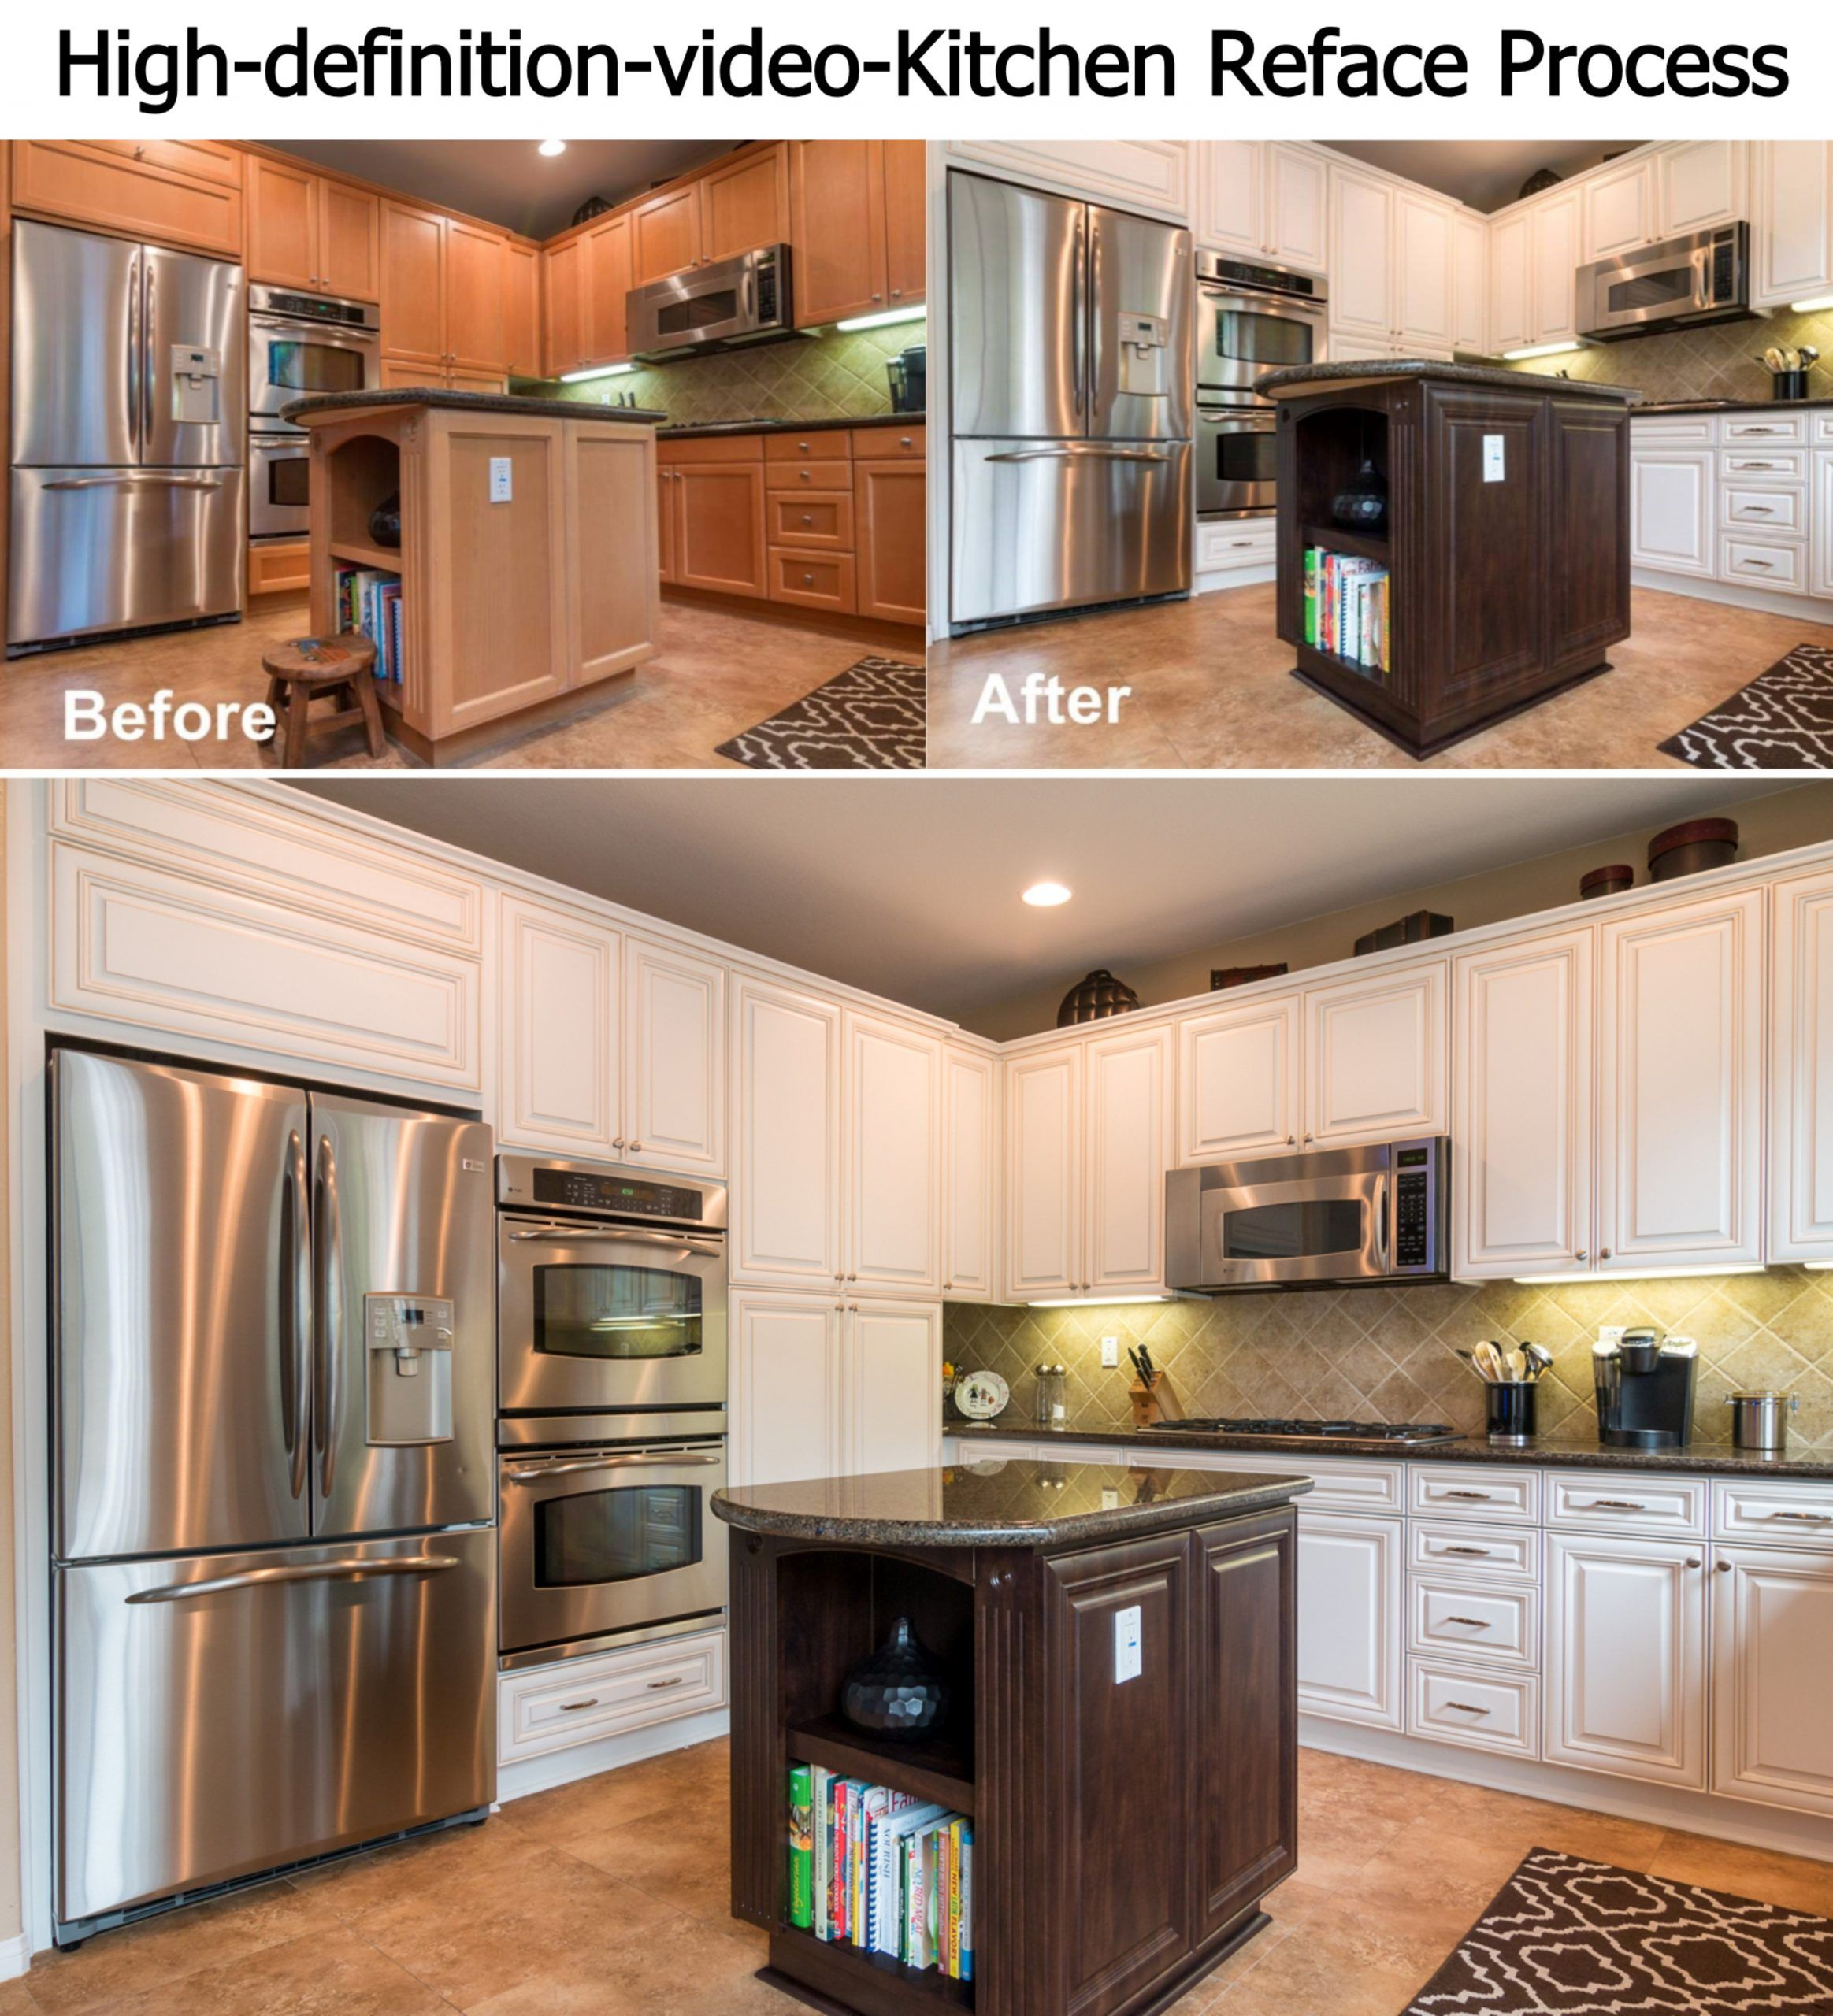 Reface Your Kitchen In As Little As 3 Days. Watch This